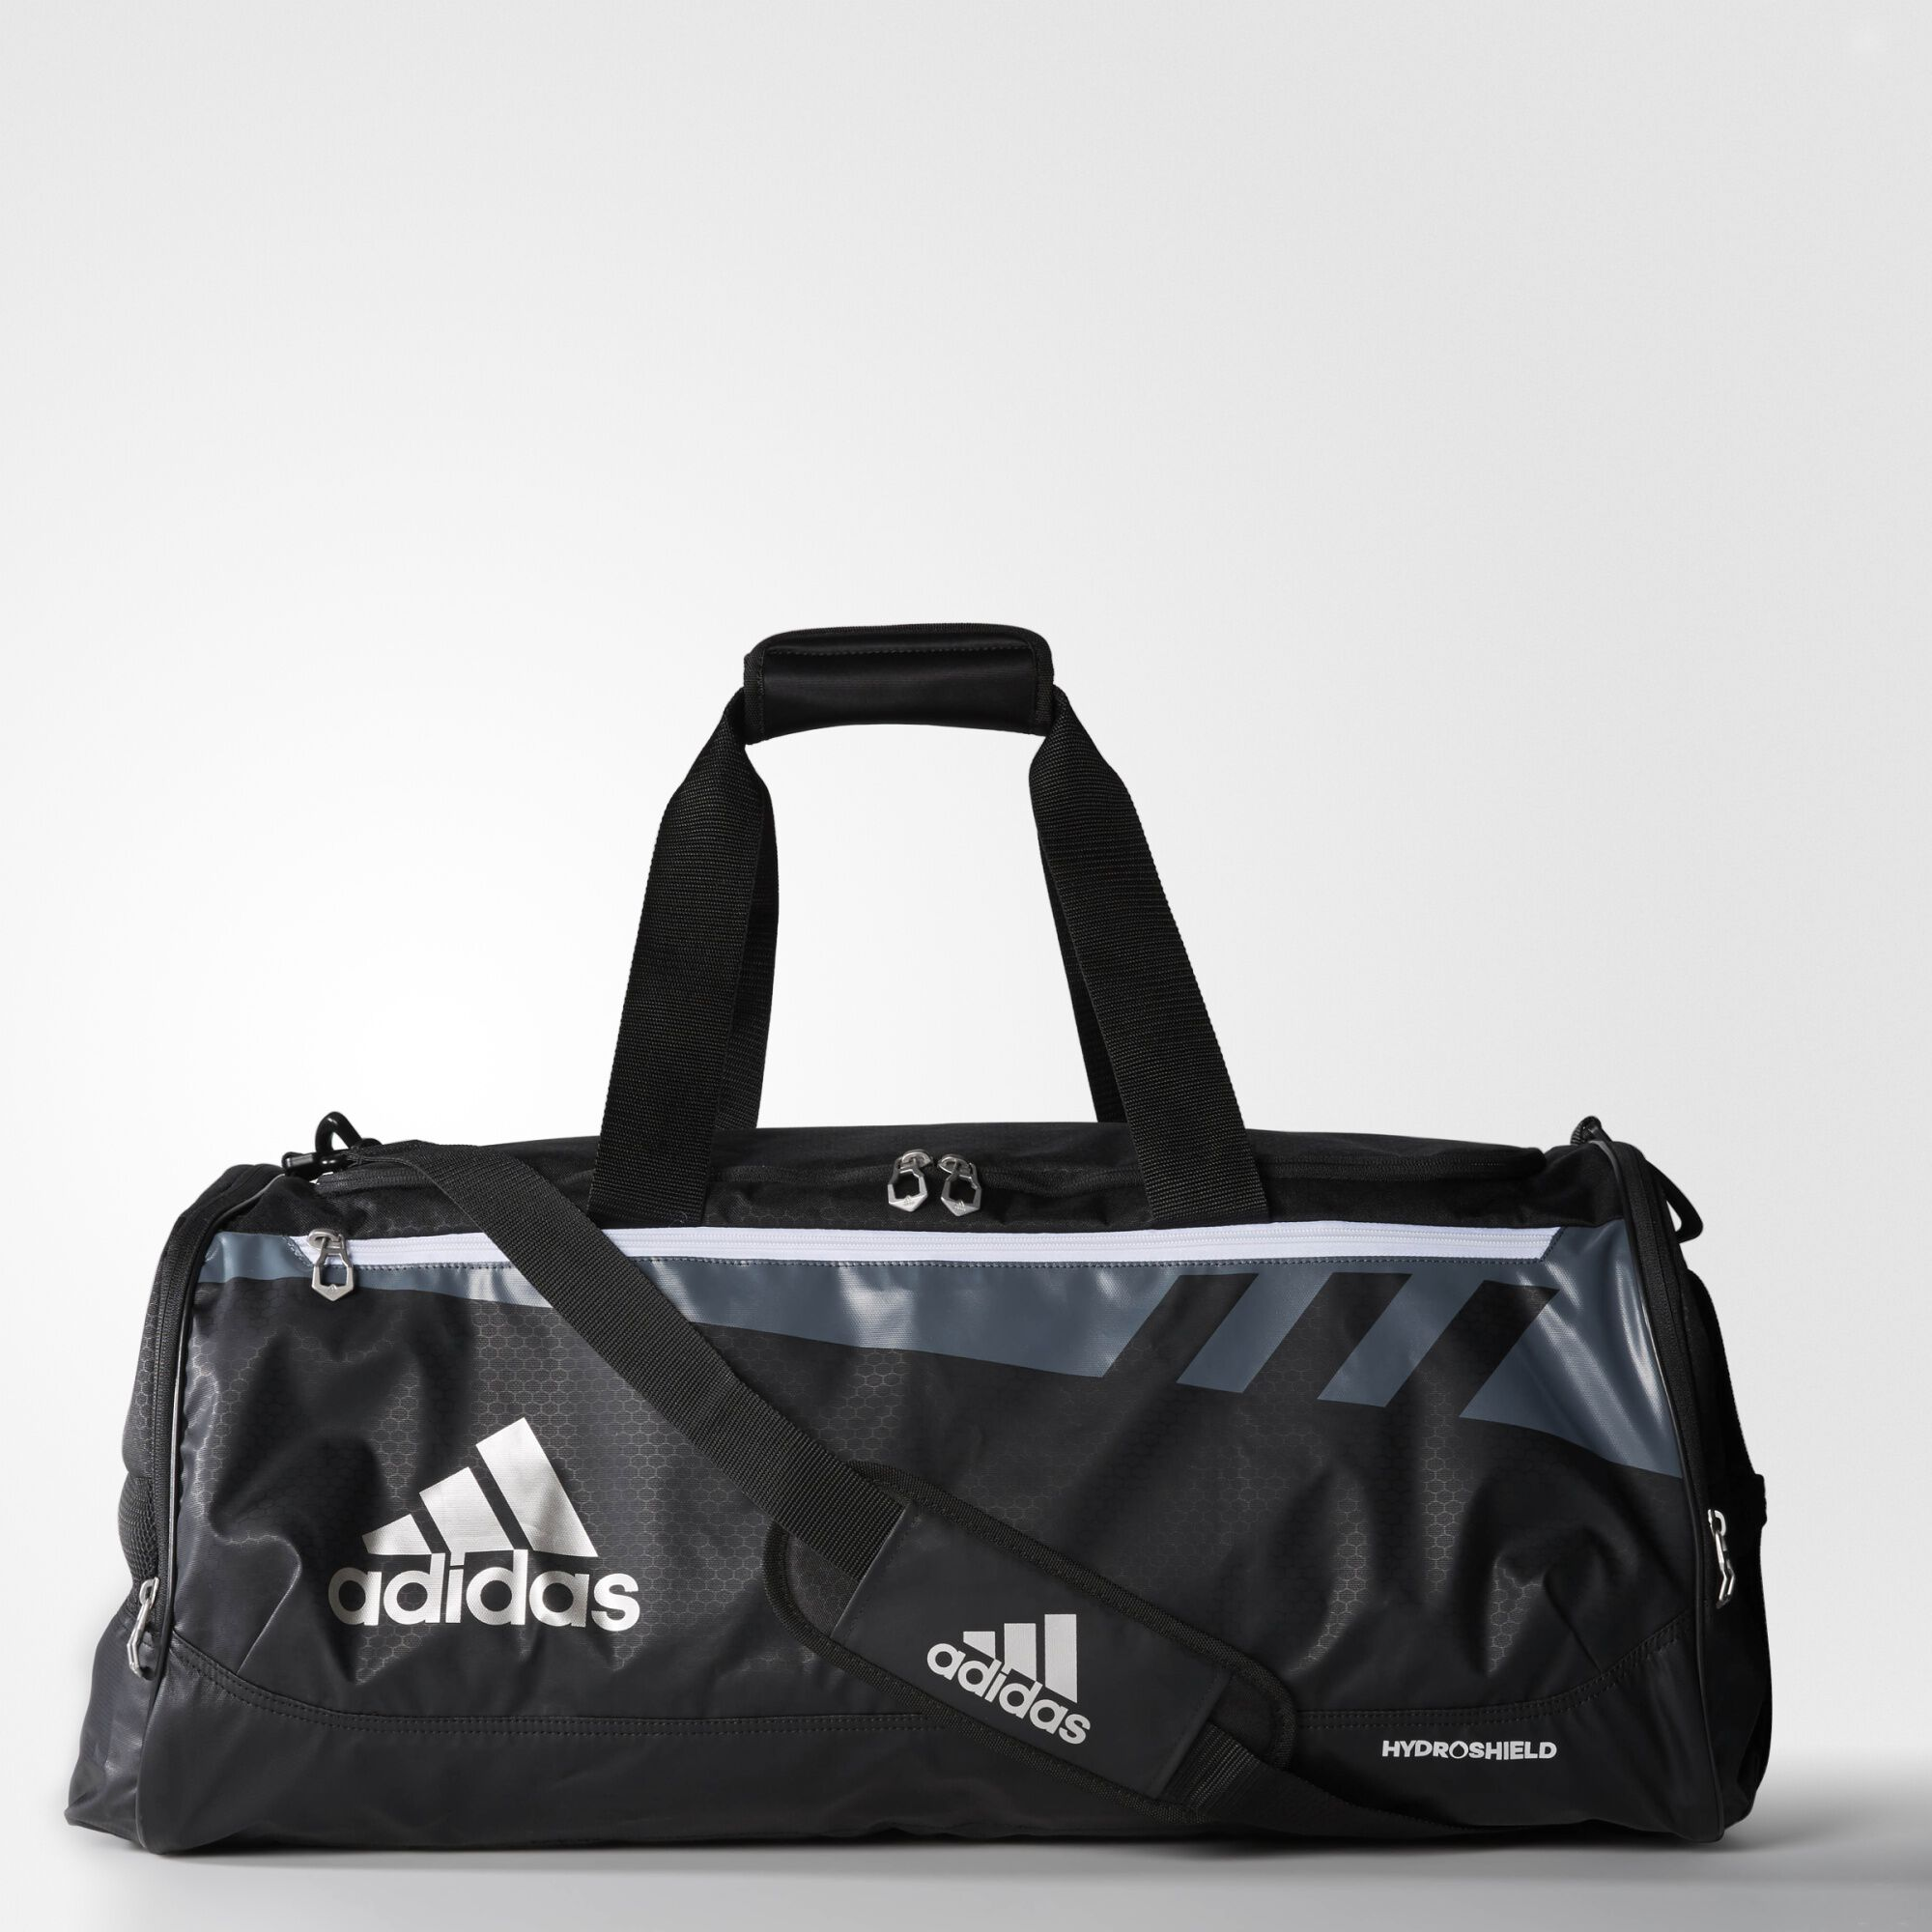 c34386f6ce70 Buy large adidas duffle bag   OFF70% Discounted